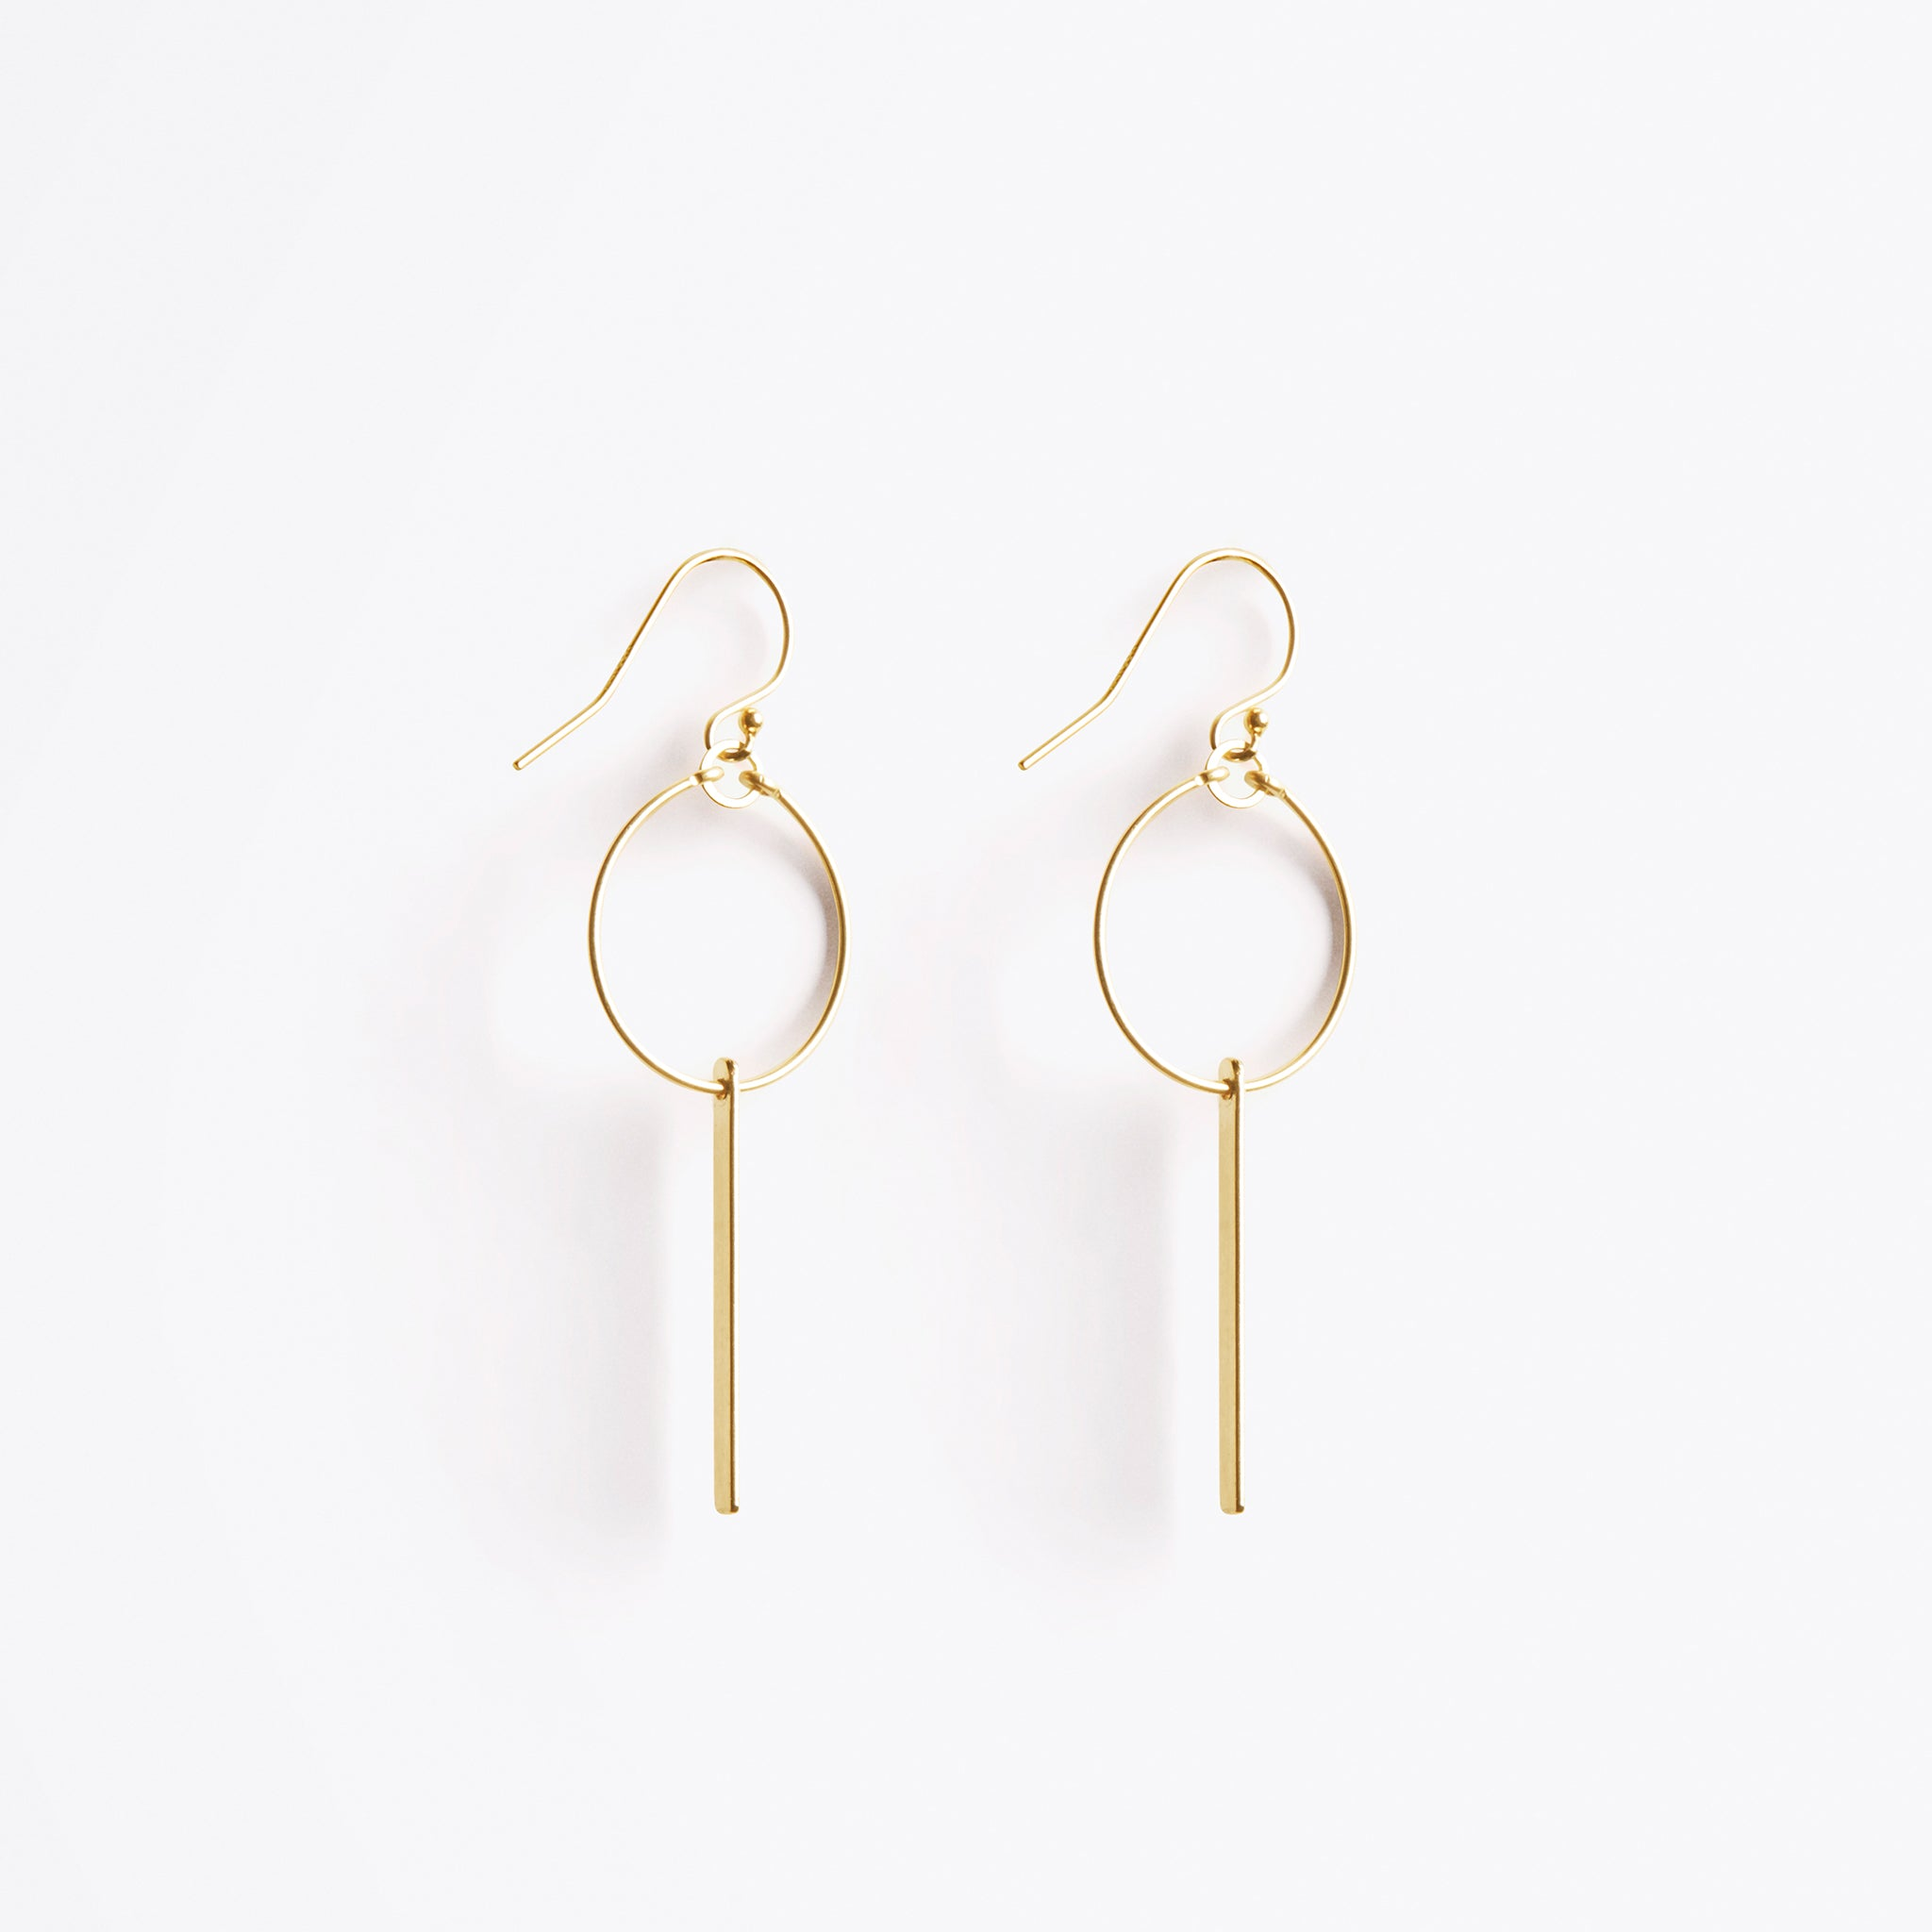 Wanderlust Life Ethically Handmade jewellery made in the UK. Minimalist gold and fine cord jewellery. aktis sculptural hoop earring